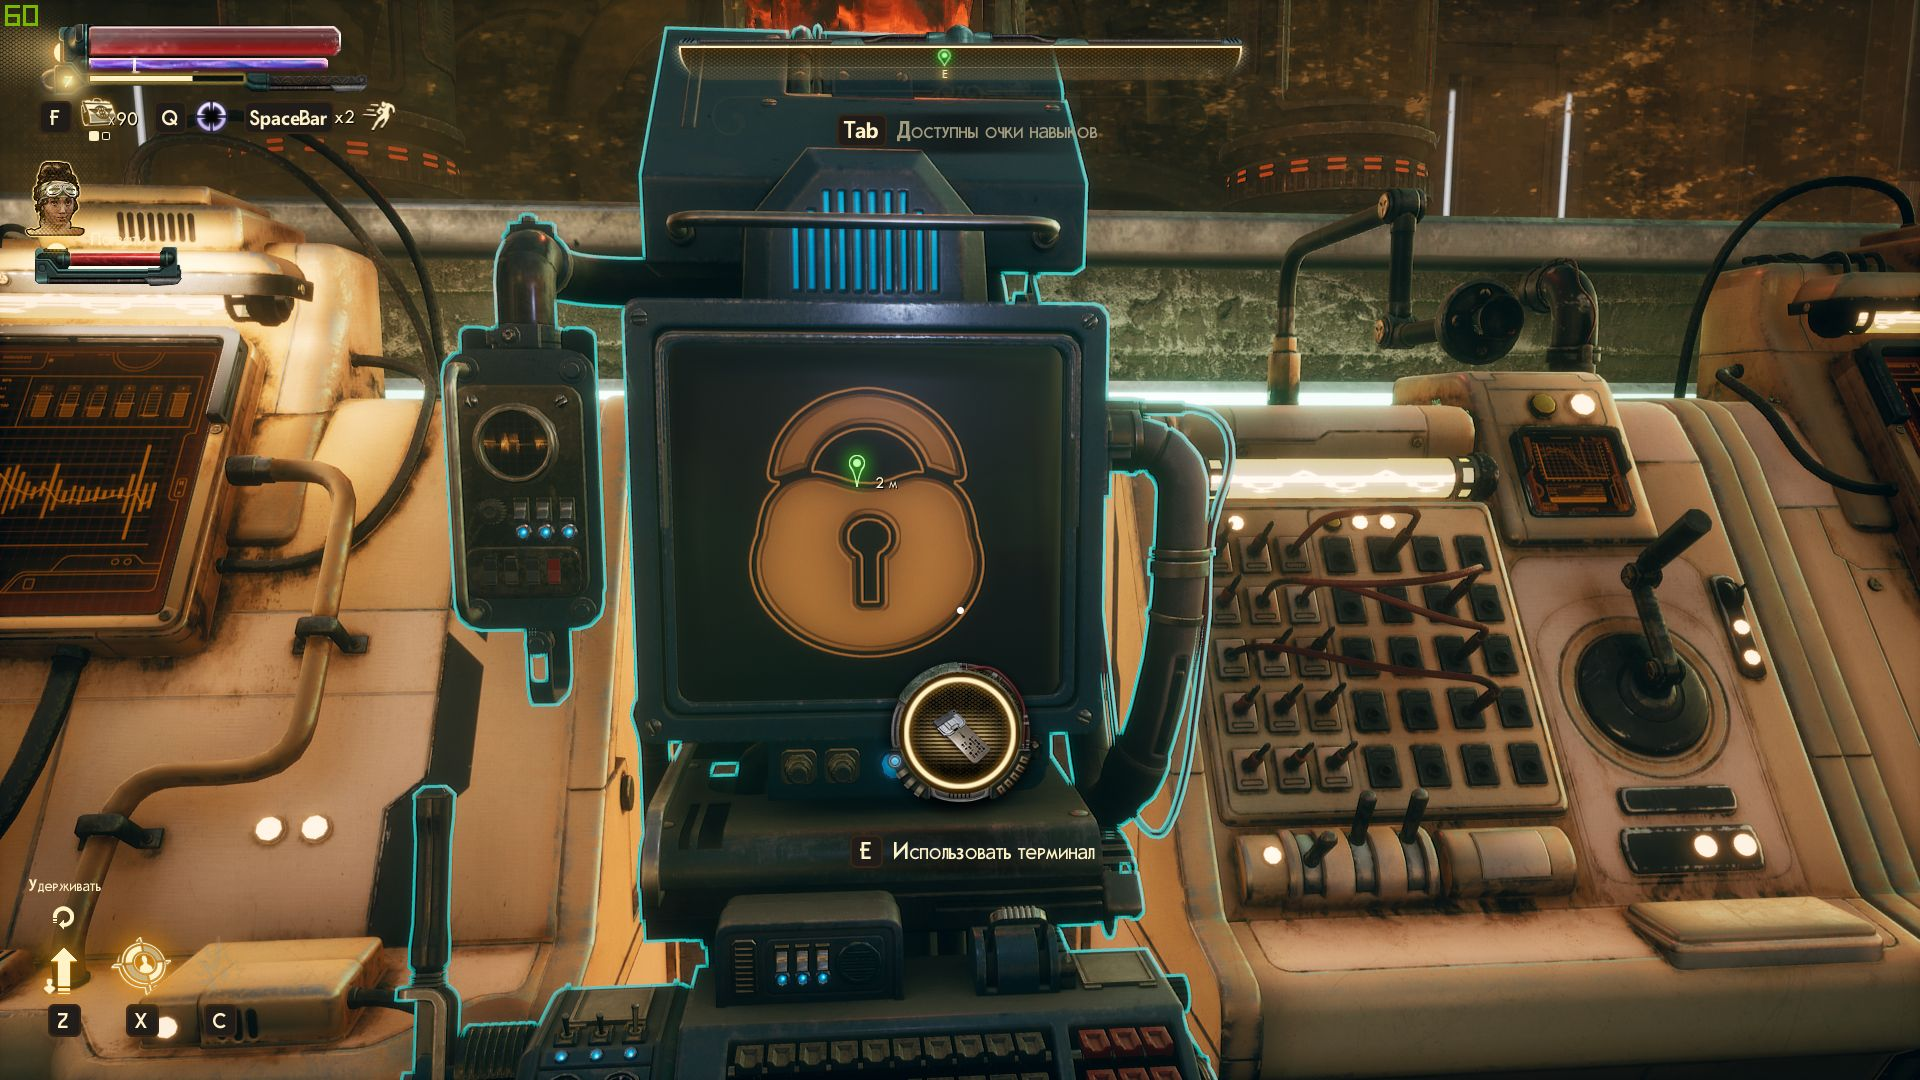 000114.Jpg - Outer Worlds, the